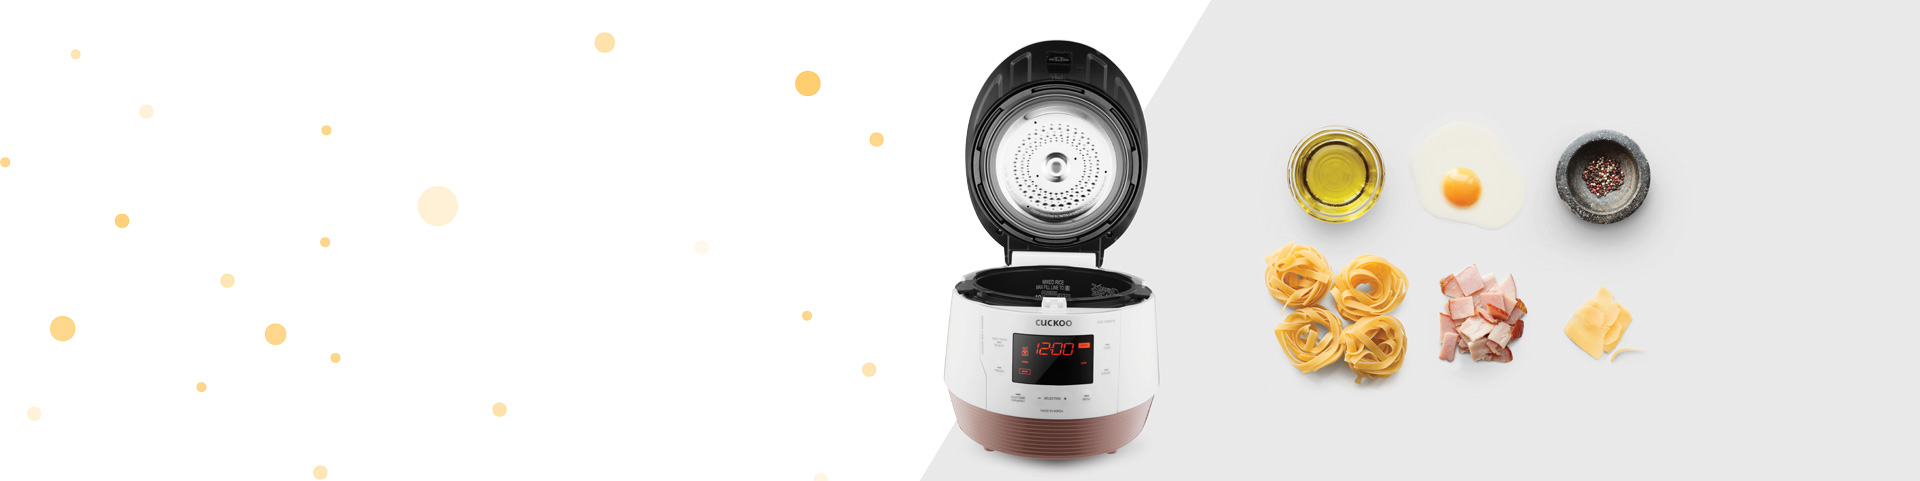 Multi cooker white background image